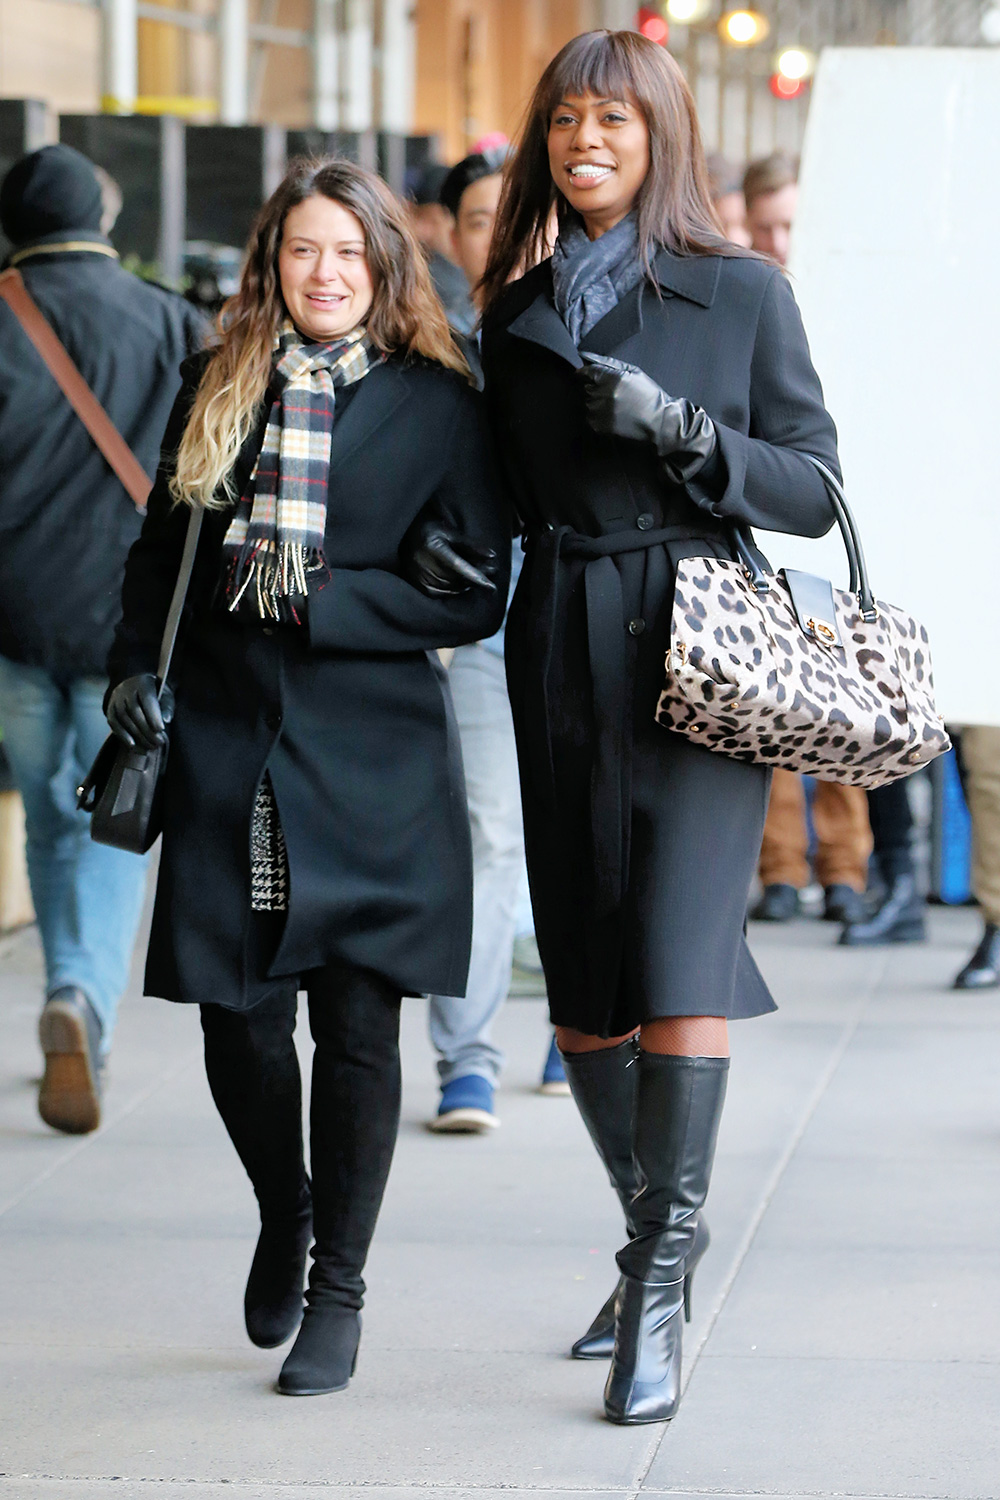 Laverne Cox and Katie Lowes film 'Untitled Anna Delvey' near Central Park in New York City